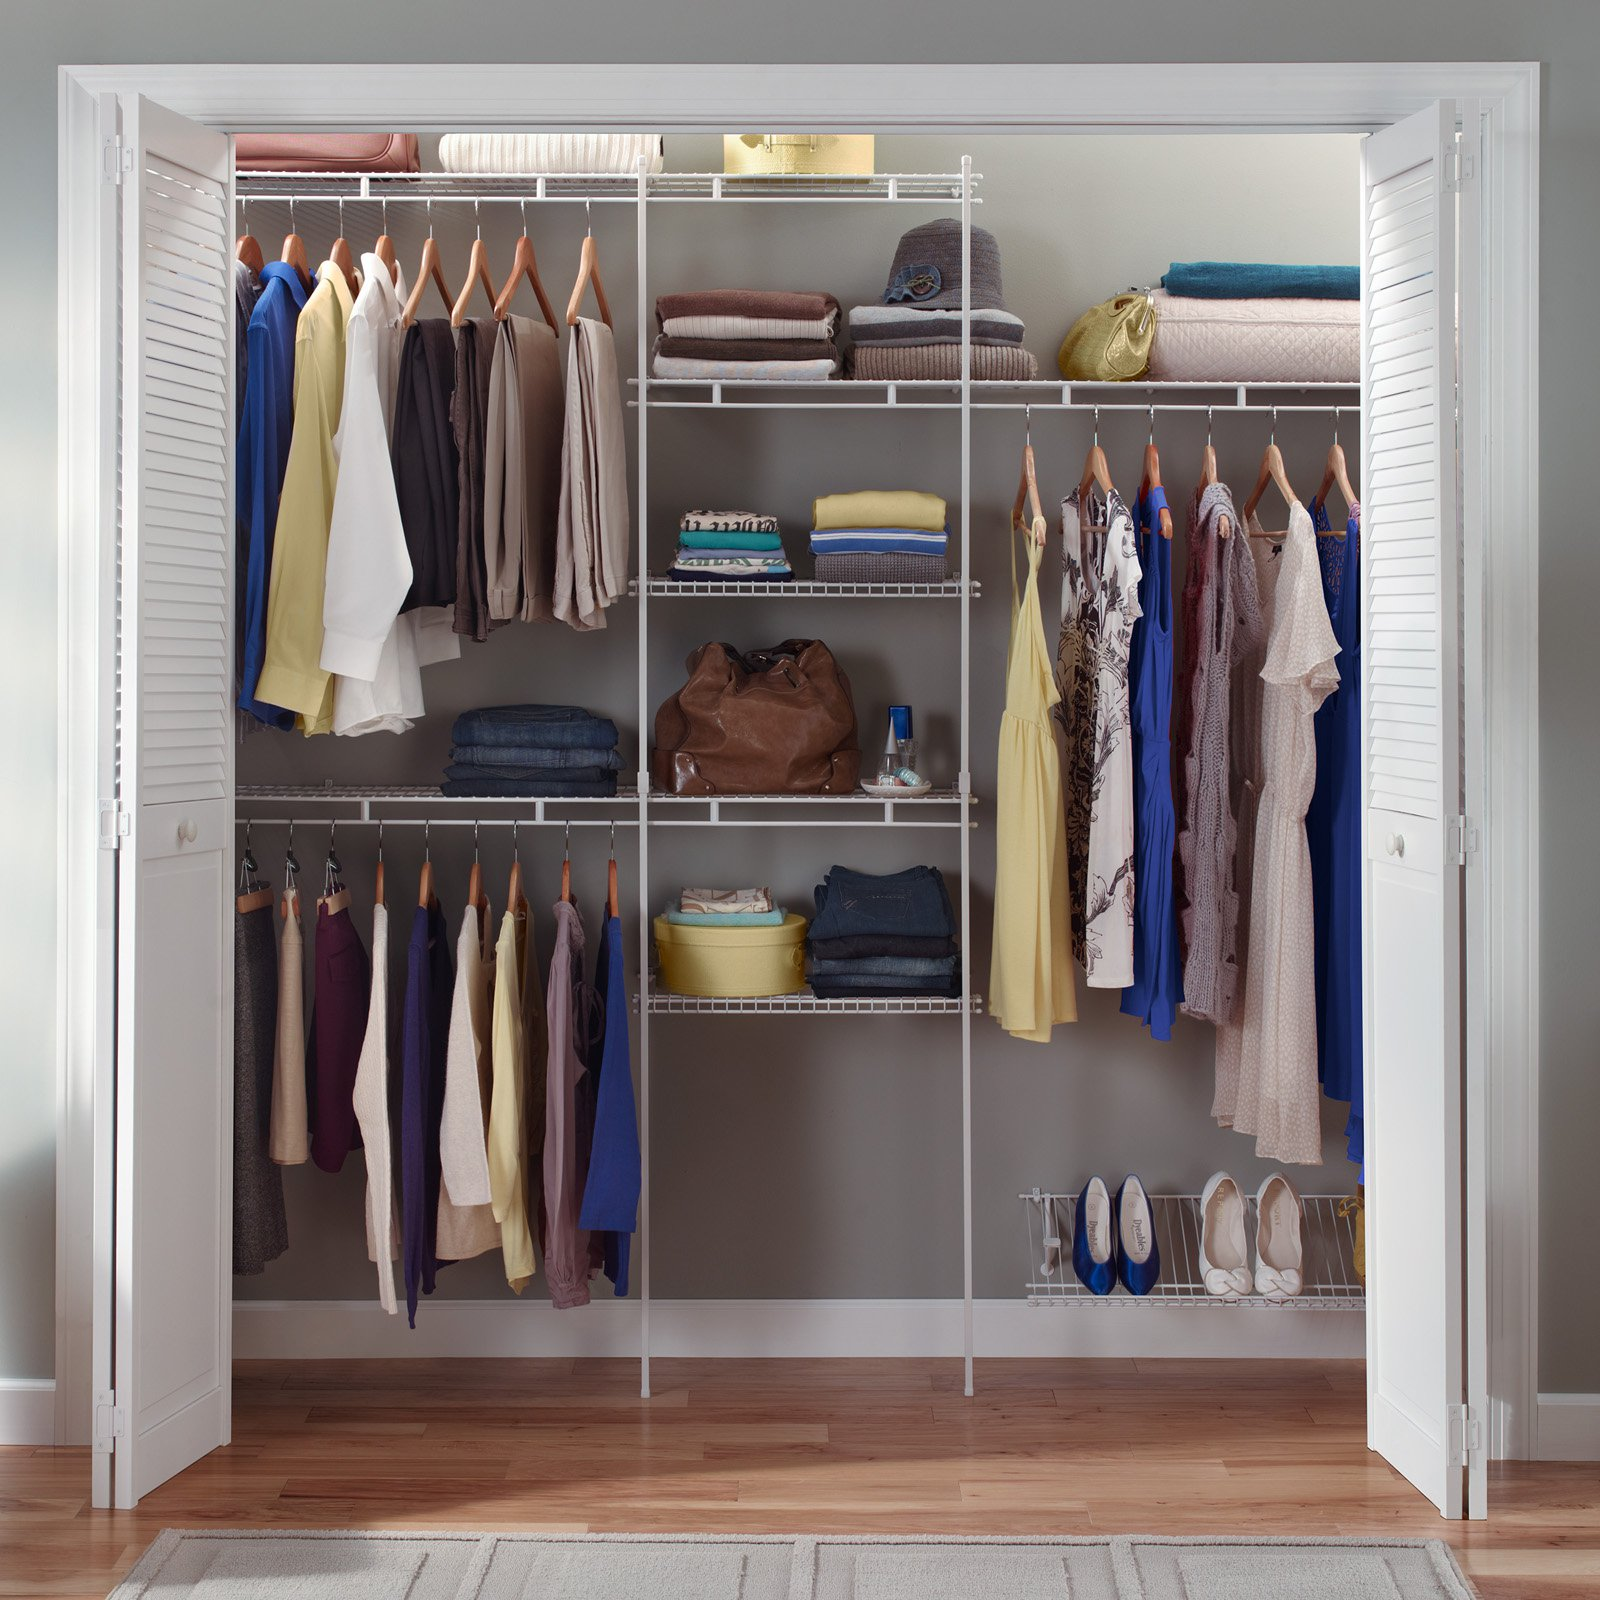 Benefits Of a Closet Organizer